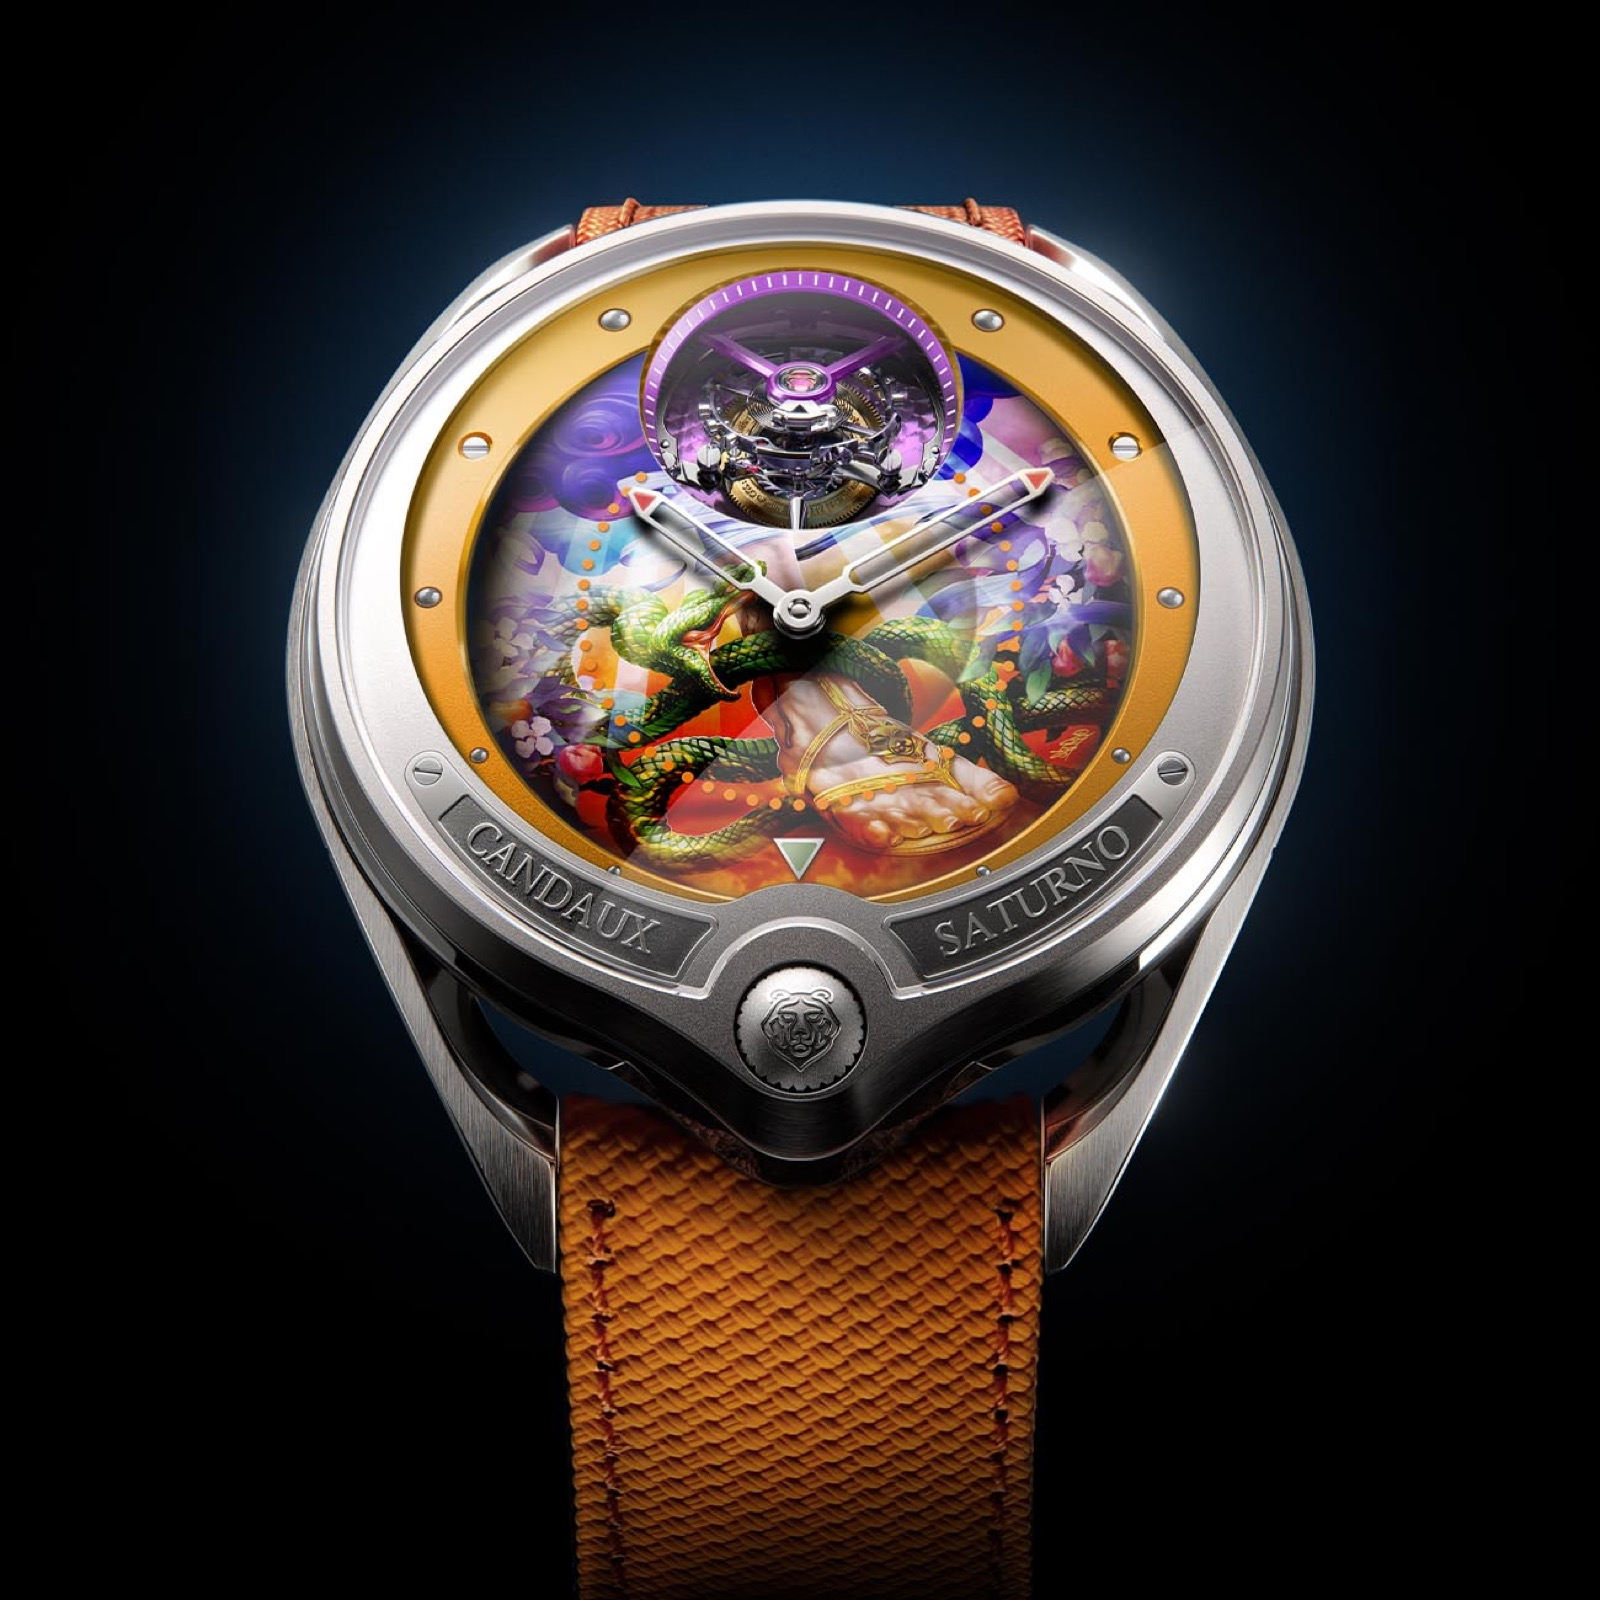 david-candaux-only-watch-2021